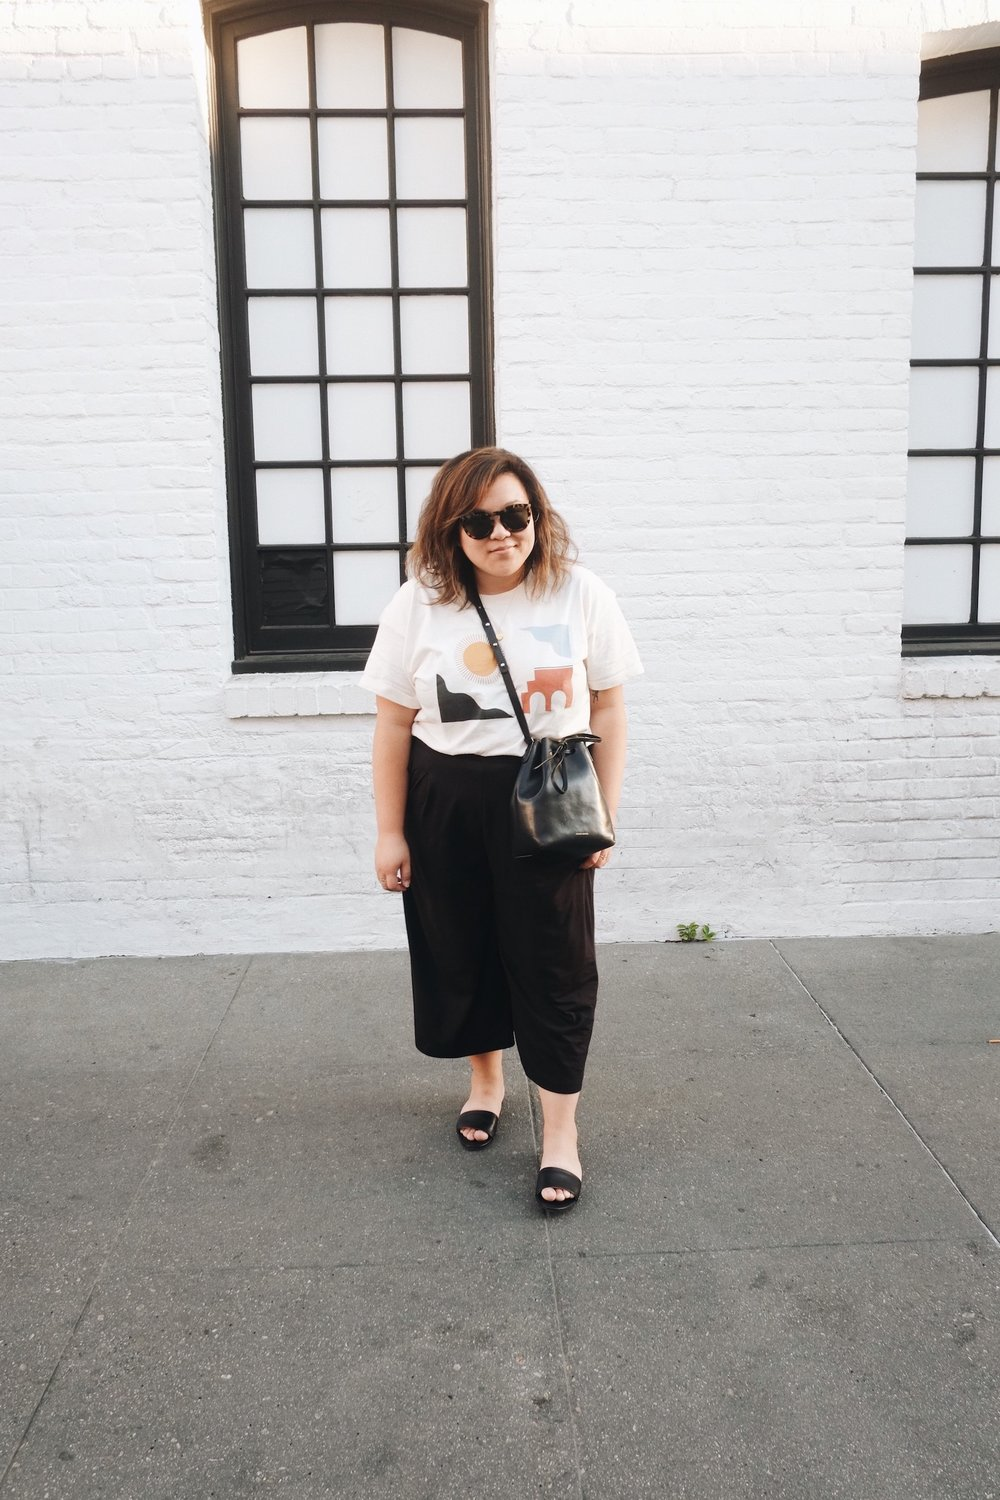 Black and white minimalist wardrobe // A Week Of Minimalist Uniform Outfits With Jasmine Hwang From The Pleb Life on The Good Trade